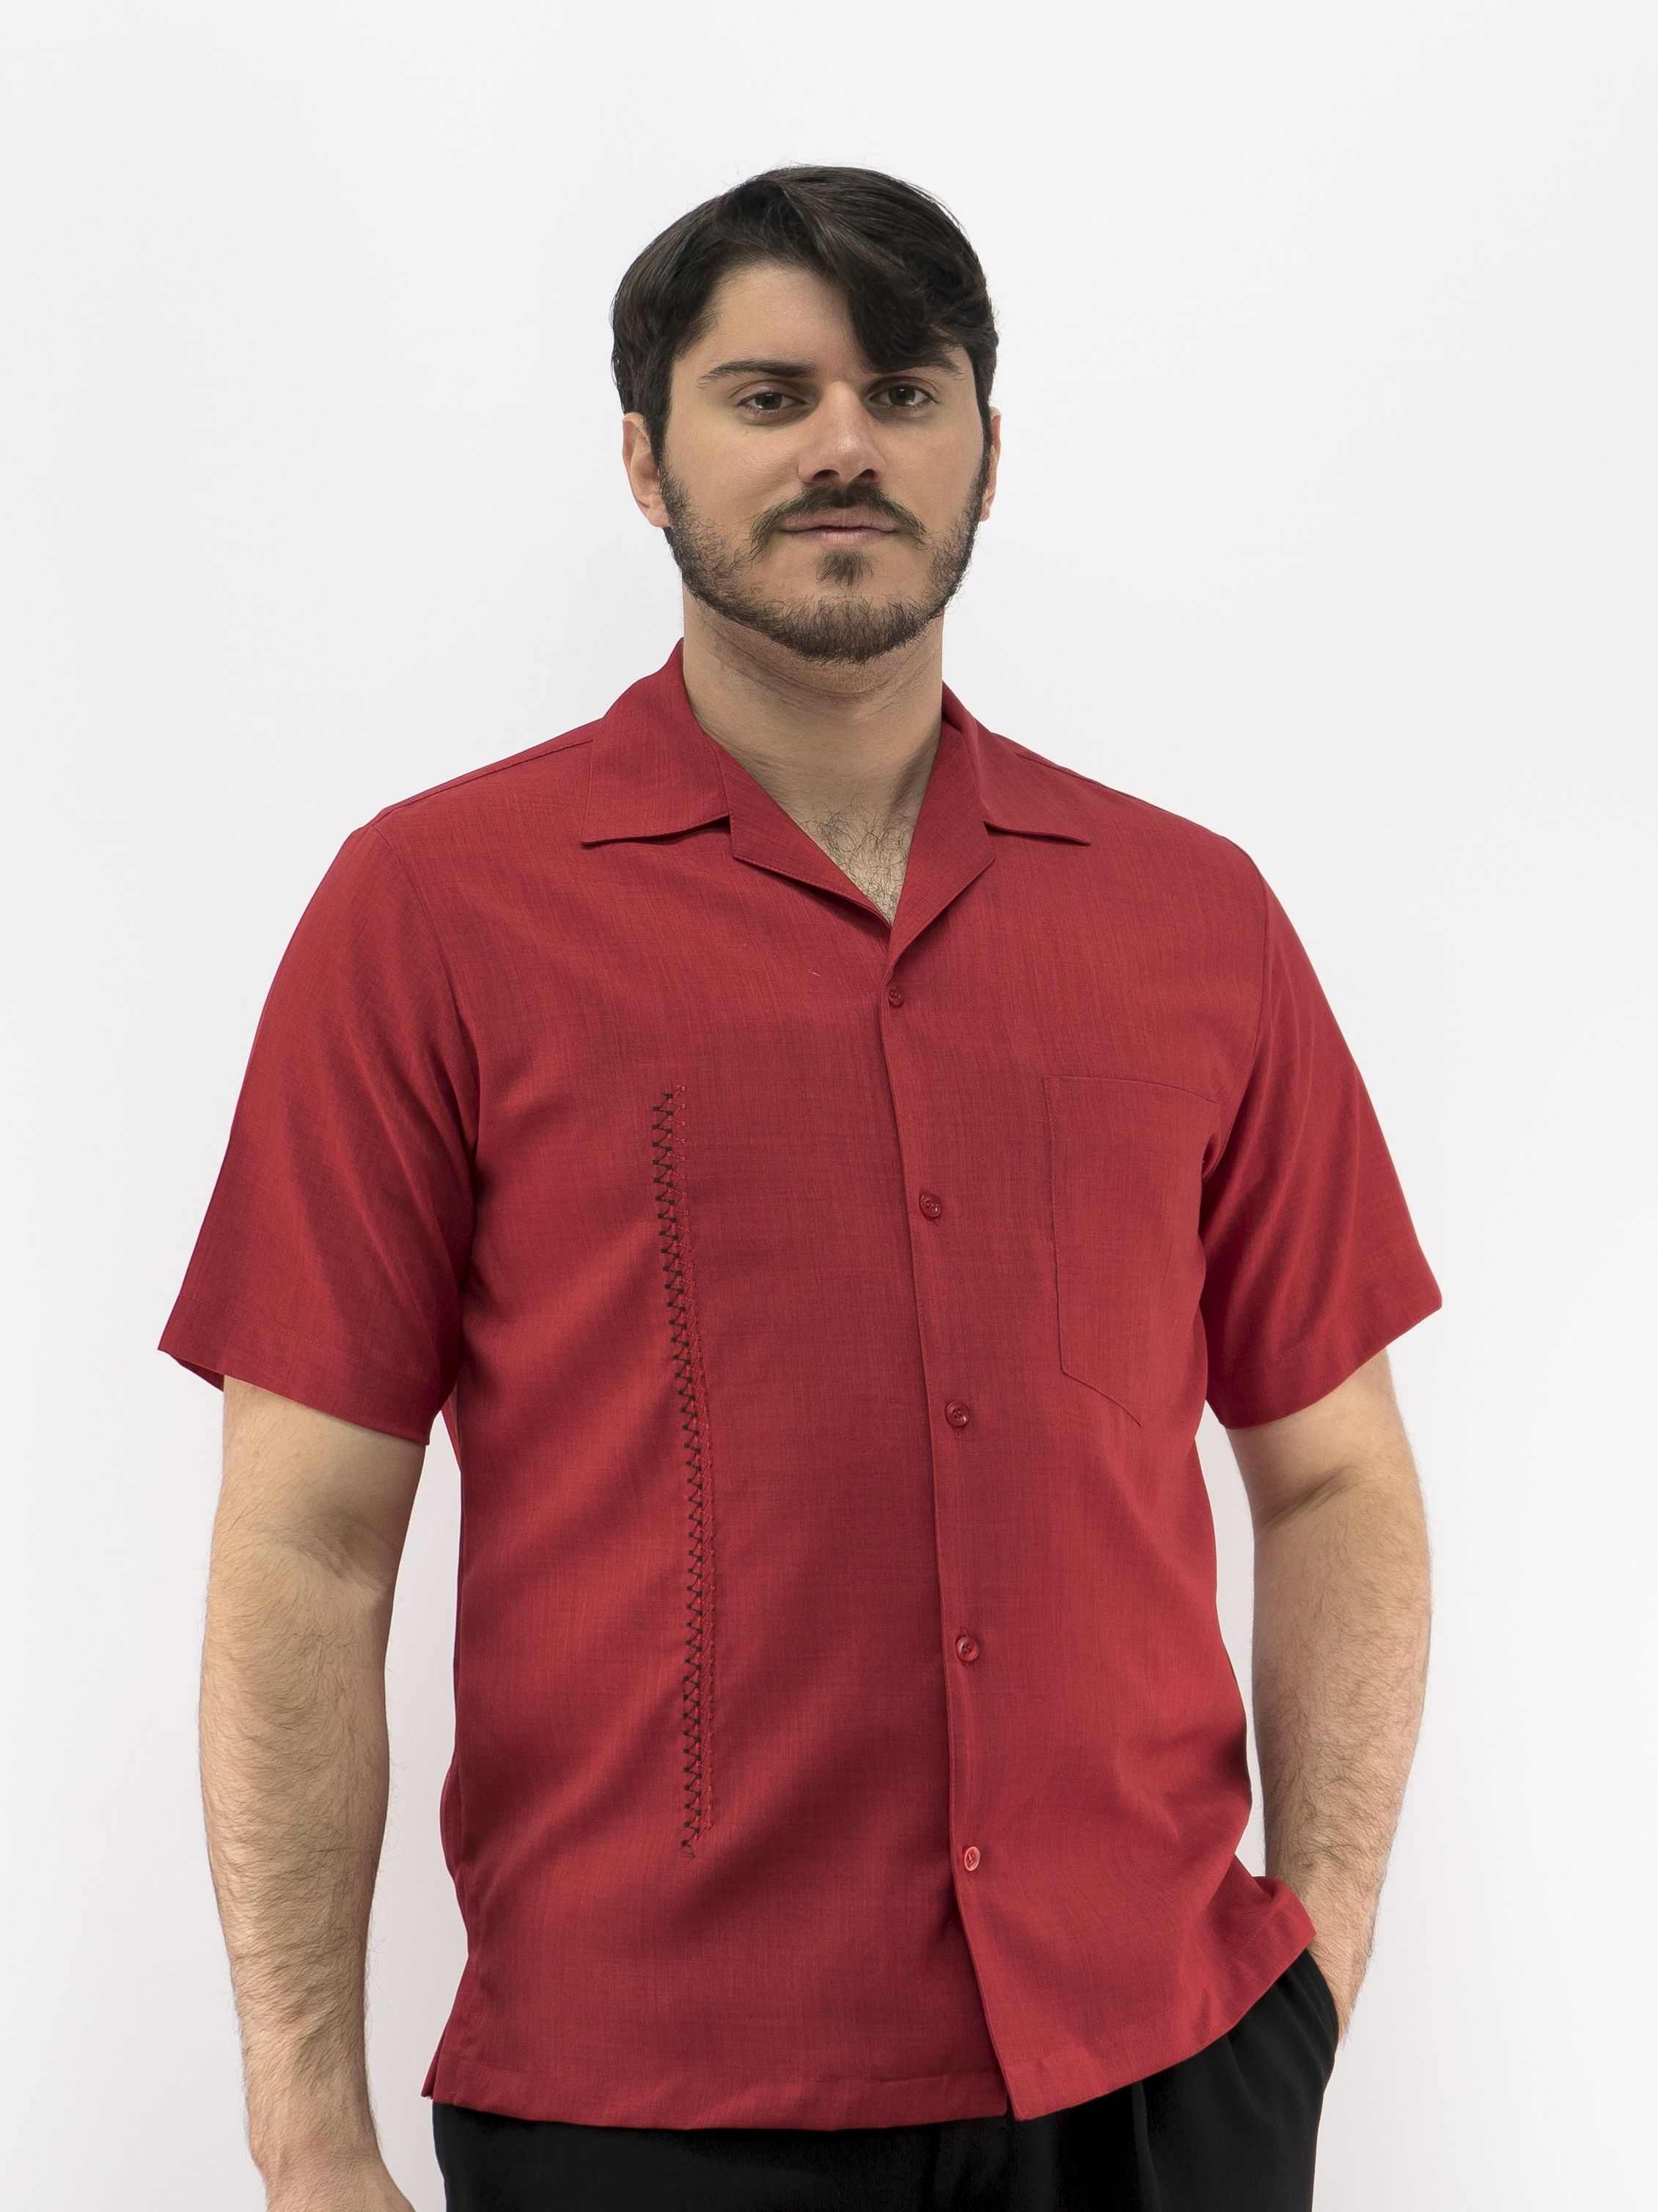 691bd3a037 D Accord Men s Casual Shirt Red 5974